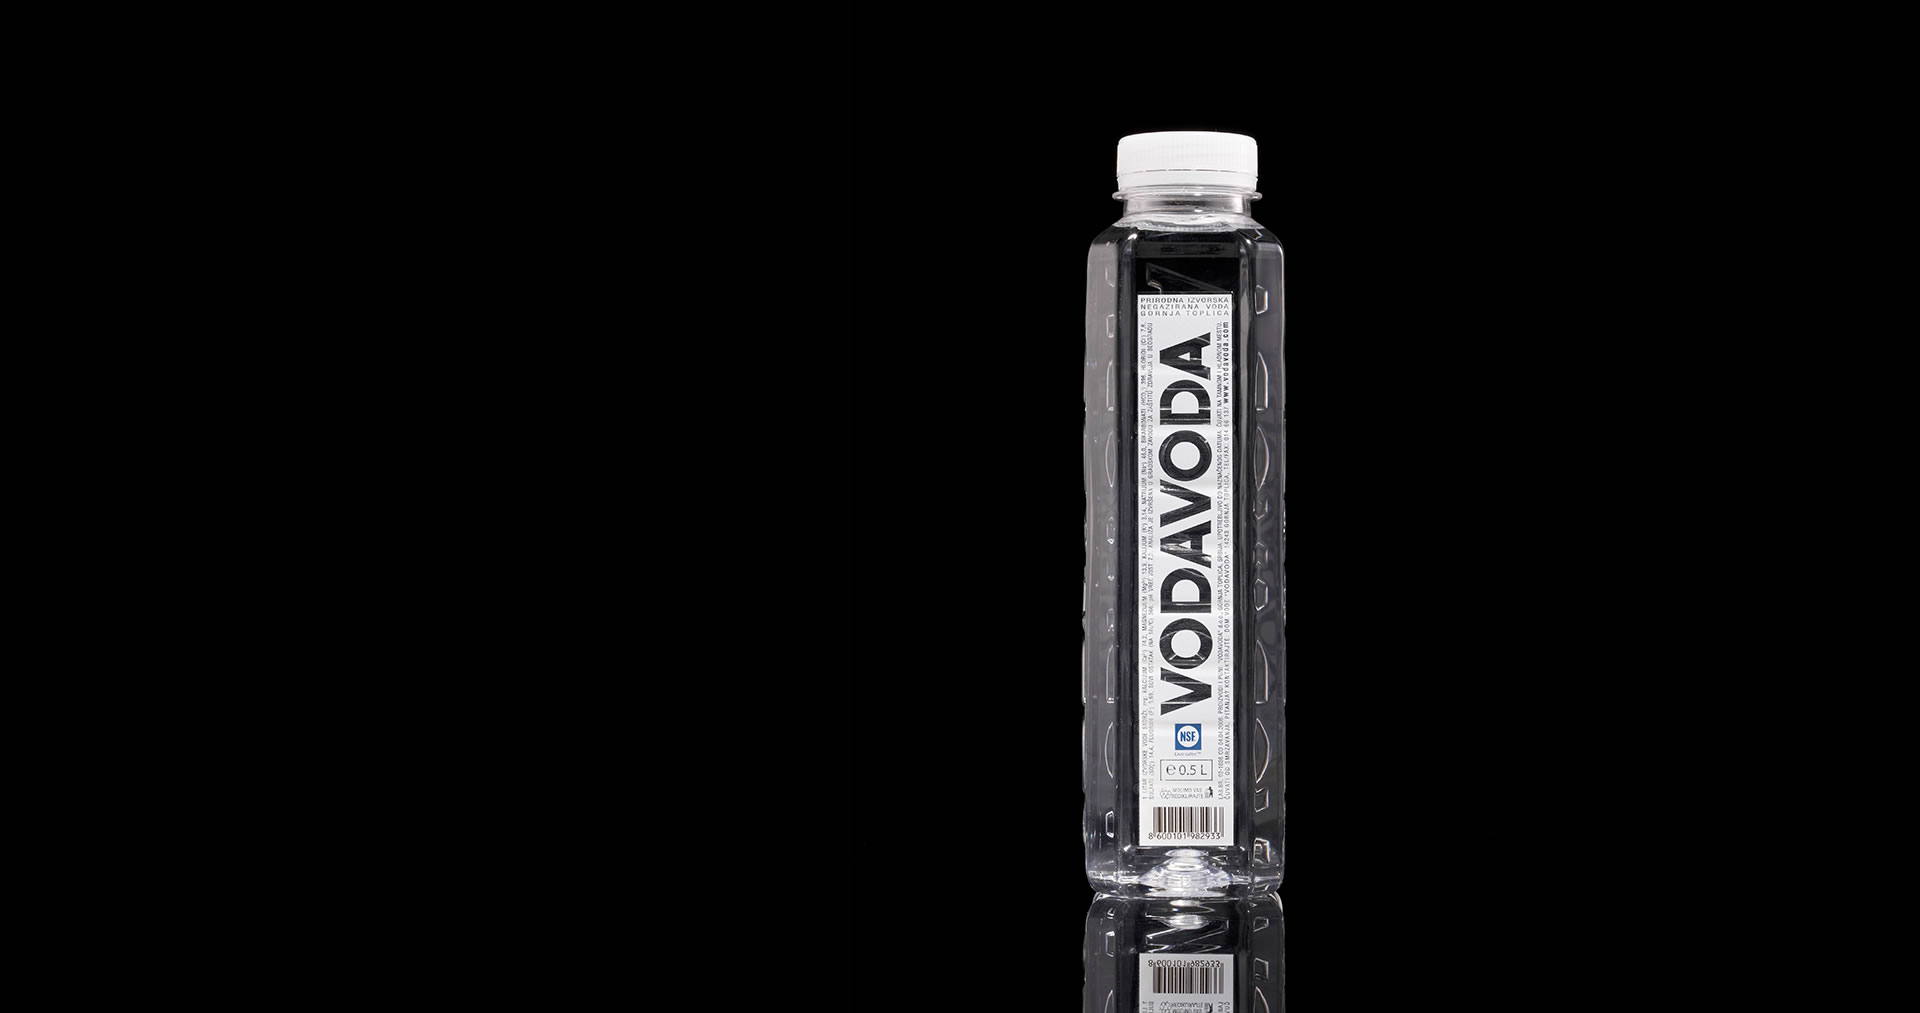 Vodavoda water bottle on black background